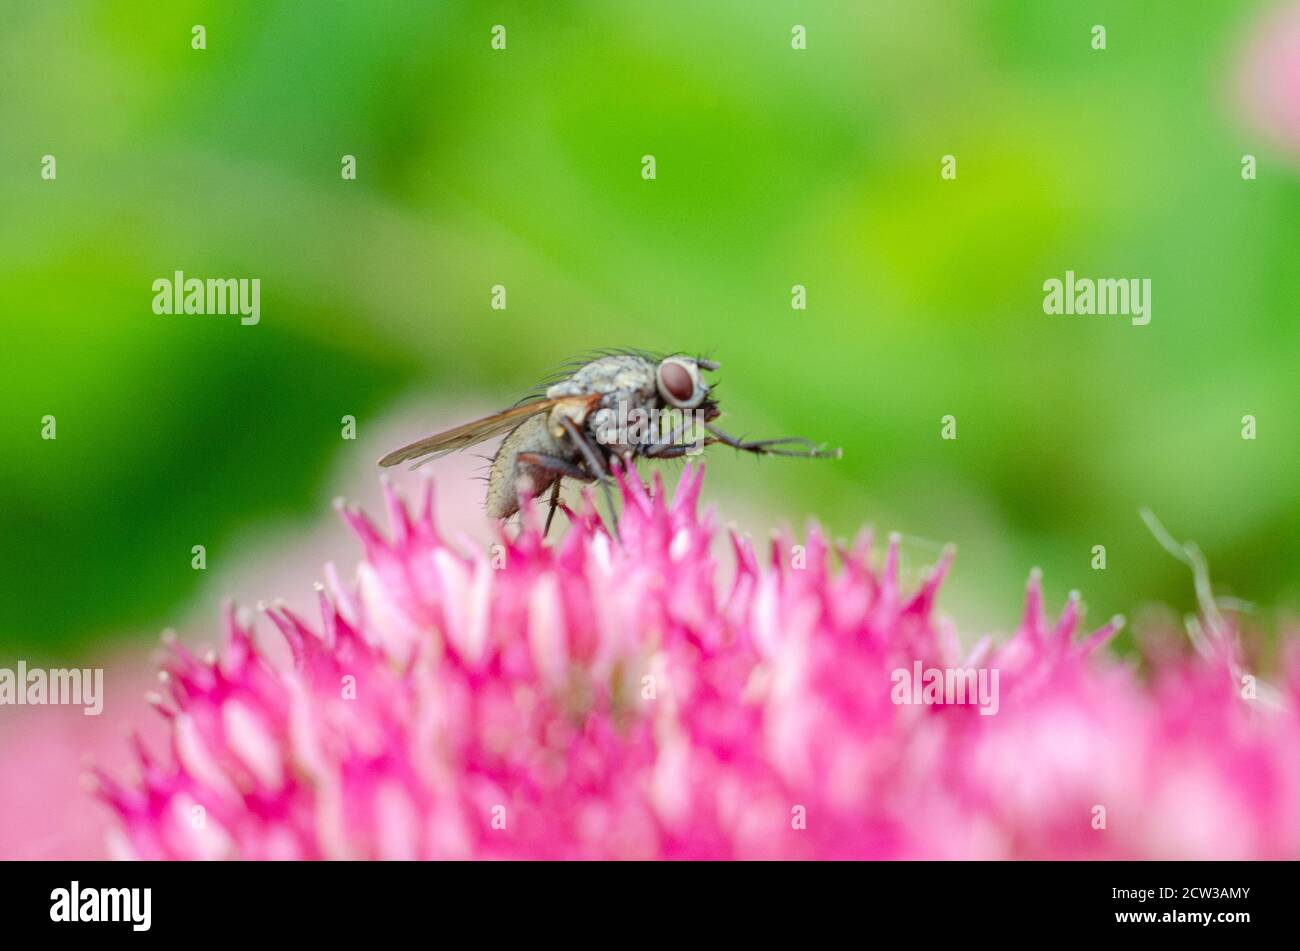 close-up-of-a-small-fly-on-sedum-flowers-2CW3AMY.jpg